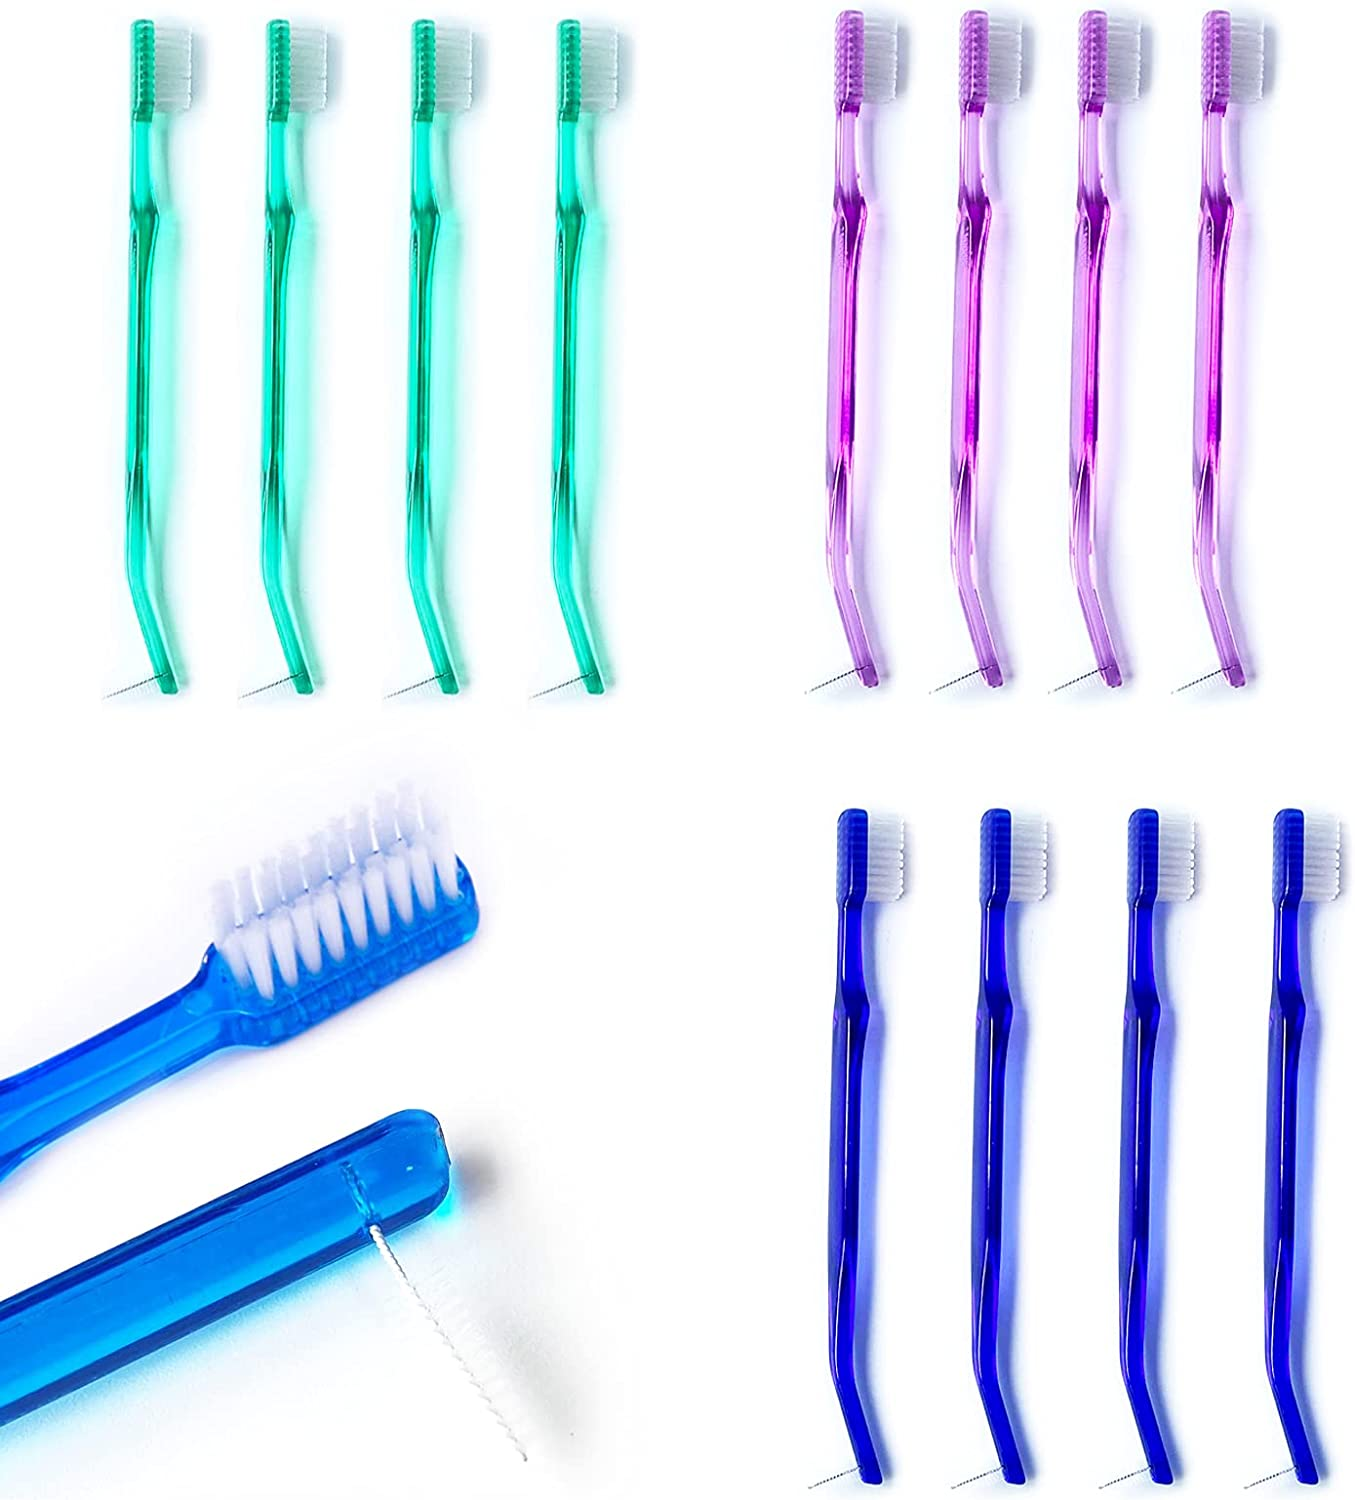 Japan's largest specialty shop assortment 12Pcs Orthodontic Toothbrush for Too Double-Ended Braces